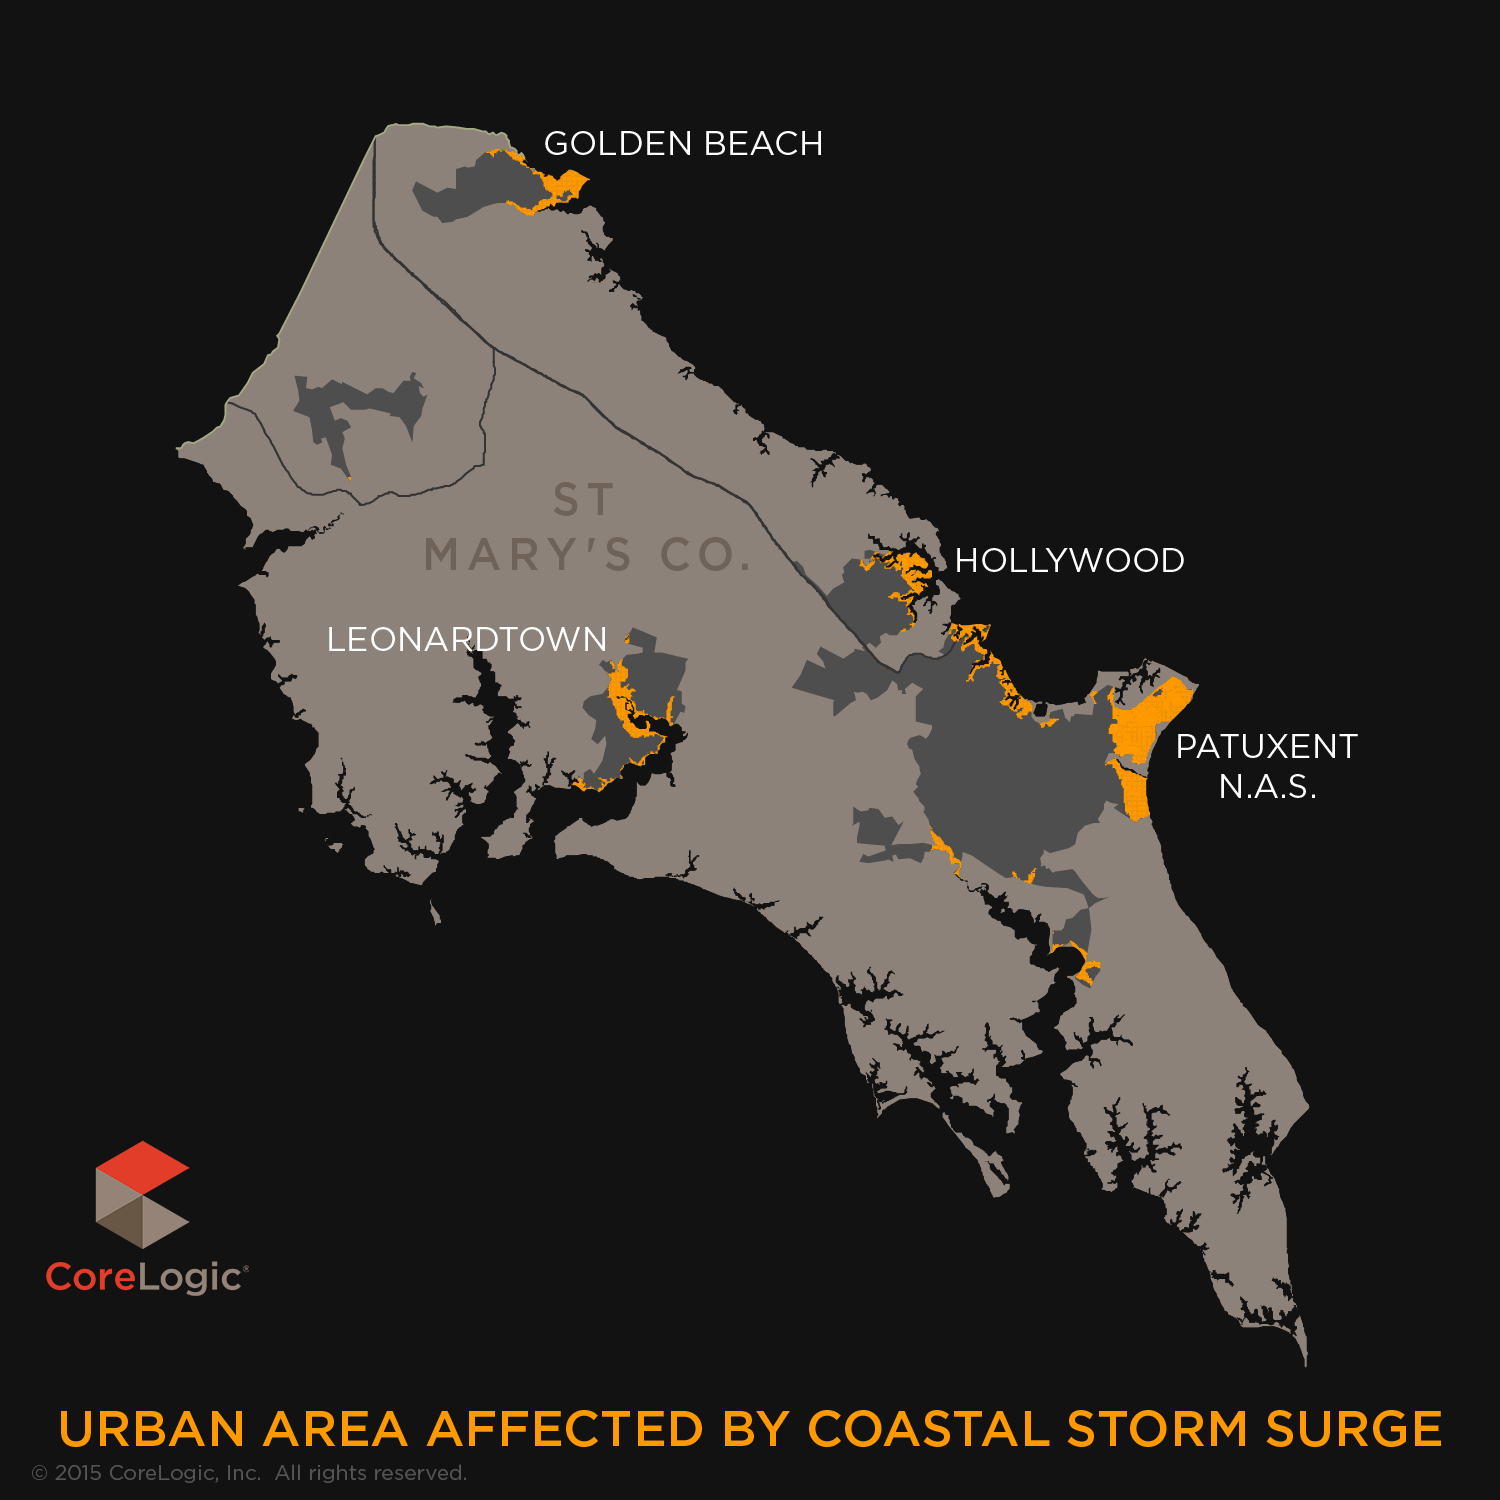 2015 Storm Surge Maps on map of norfolk va, map of alexandria va, map of asheville nc, map of virginia beach va, map of salt lake city ut, map of charlottesville va, map of fredericksburg va, map of dover de, map of sandusky oh, map of forest acres sc, map of richmond va, map of pittsburgh pa, map of hopkinsville ky, map of reston va, map of lexington ky, map of spring tx, map of winchester va, map of roanoke va, map of arlington tx, map of chicago il,